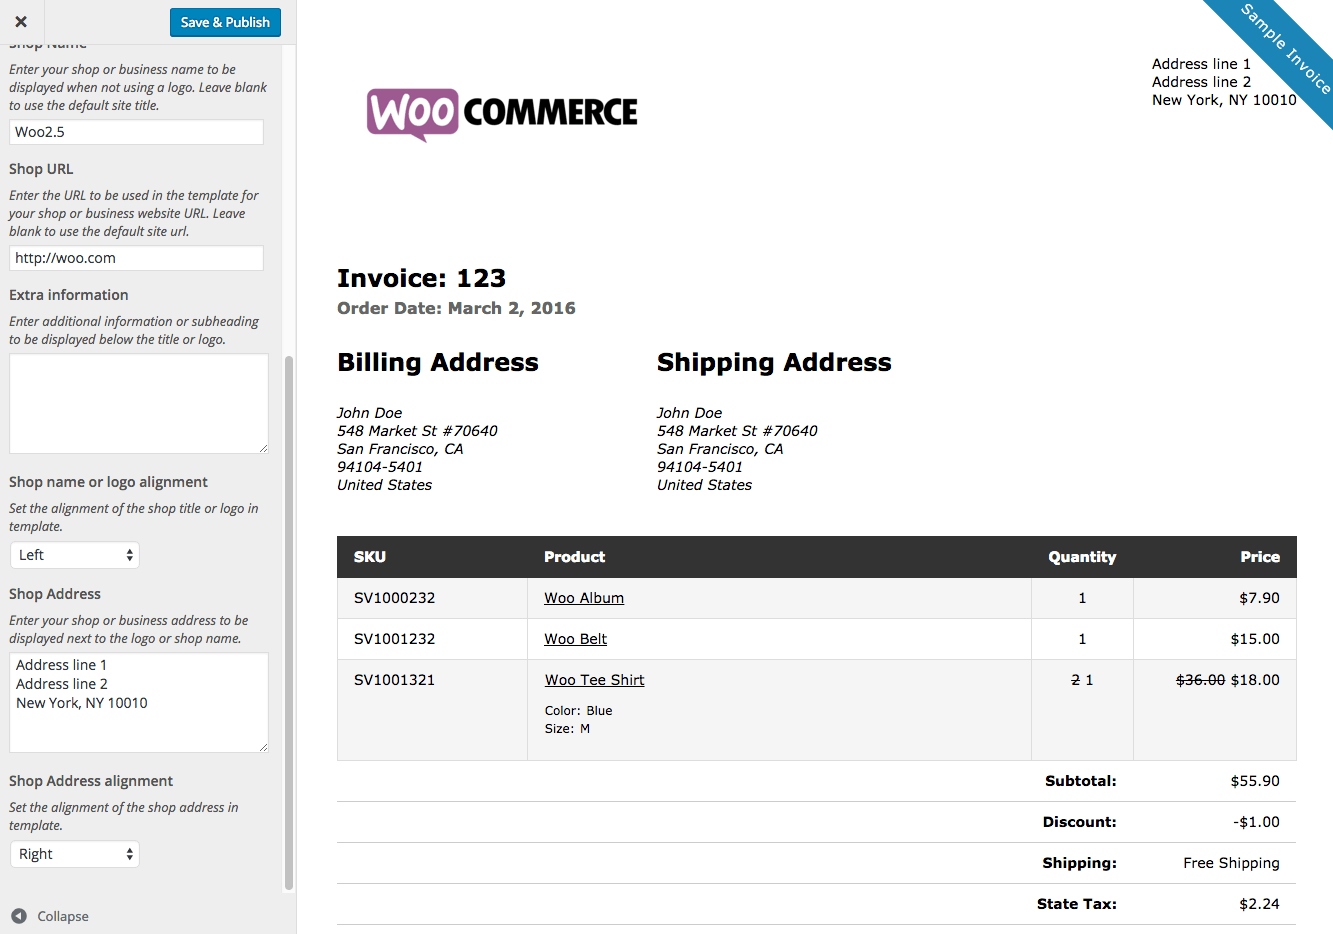 Maidofhonortoastus  Picturesque Woocommerce Print Invoices Amp Packing Lists  Woocommerce Docs With Licious Woocommerce Print Invoices  Packing Lists Customizer With Captivating Customised Receipt Books Also Hotel Bill Receipt In Addition Format Of Money Receipt And Free Receipt Organizer Software As Well As Epson Receipt Additionally Online Receipt For Lic Premium From Docswoocommercecom With Maidofhonortoastus  Licious Woocommerce Print Invoices Amp Packing Lists  Woocommerce Docs With Captivating Woocommerce Print Invoices  Packing Lists Customizer And Picturesque Customised Receipt Books Also Hotel Bill Receipt In Addition Format Of Money Receipt From Docswoocommercecom